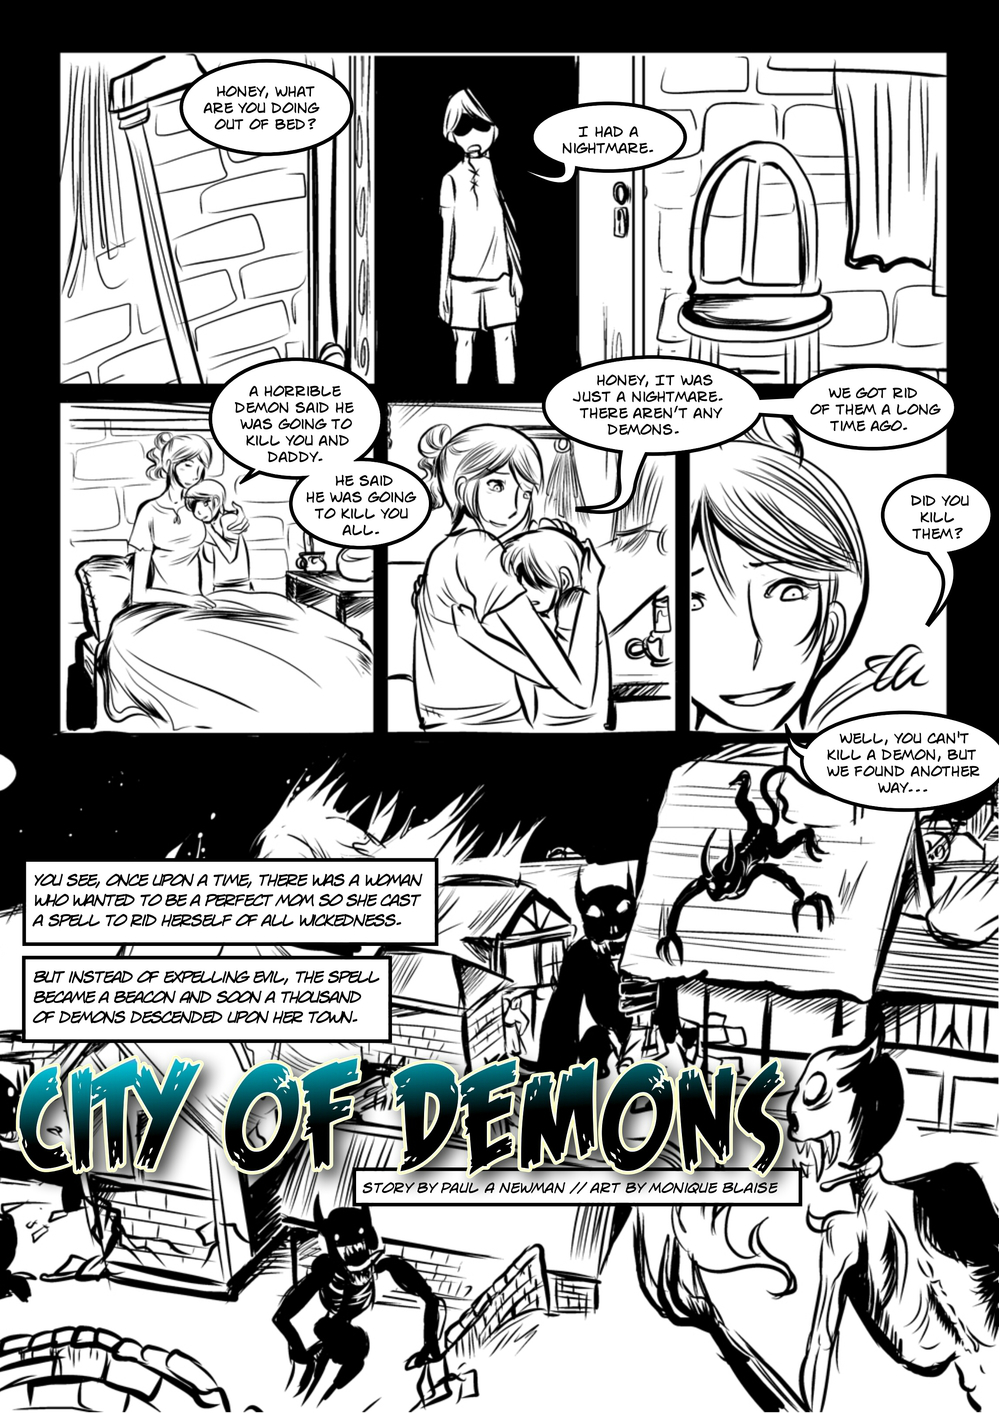 CITY OF DEMONS page 1 -- story 3 in The Book of Lies